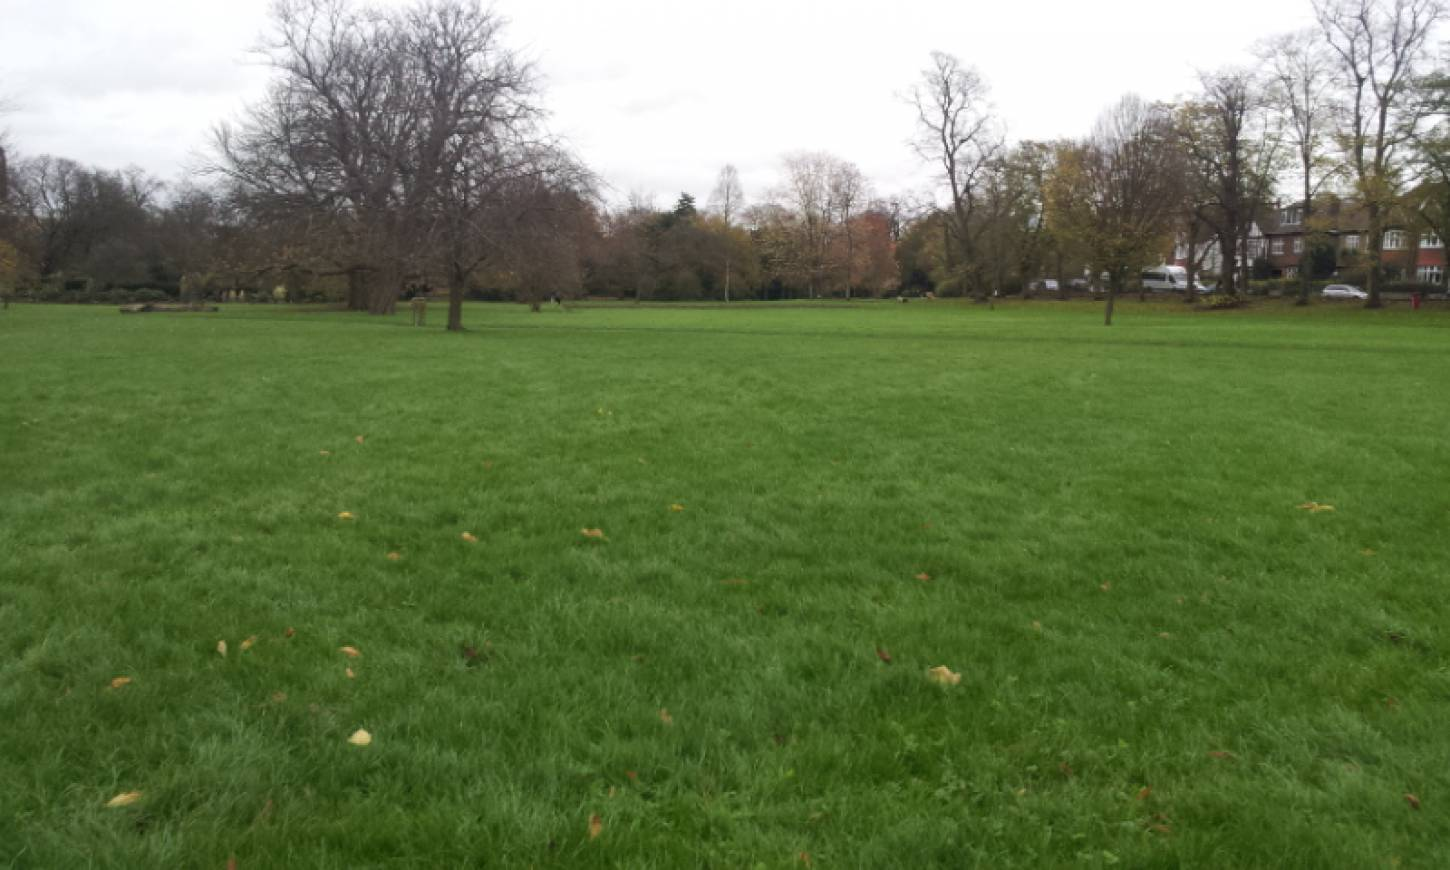 Day 1 sowing on Ruskin Park, 'the Wheats Field', the site, pics <a href='http://www.brockwellgreenhouses.org.uk/welcome/' target=_blank>Ann Bodkin</a> - 2:27pm&nbsp;28<sup>th</sup>&nbsp;Nov.&nbsp;'15